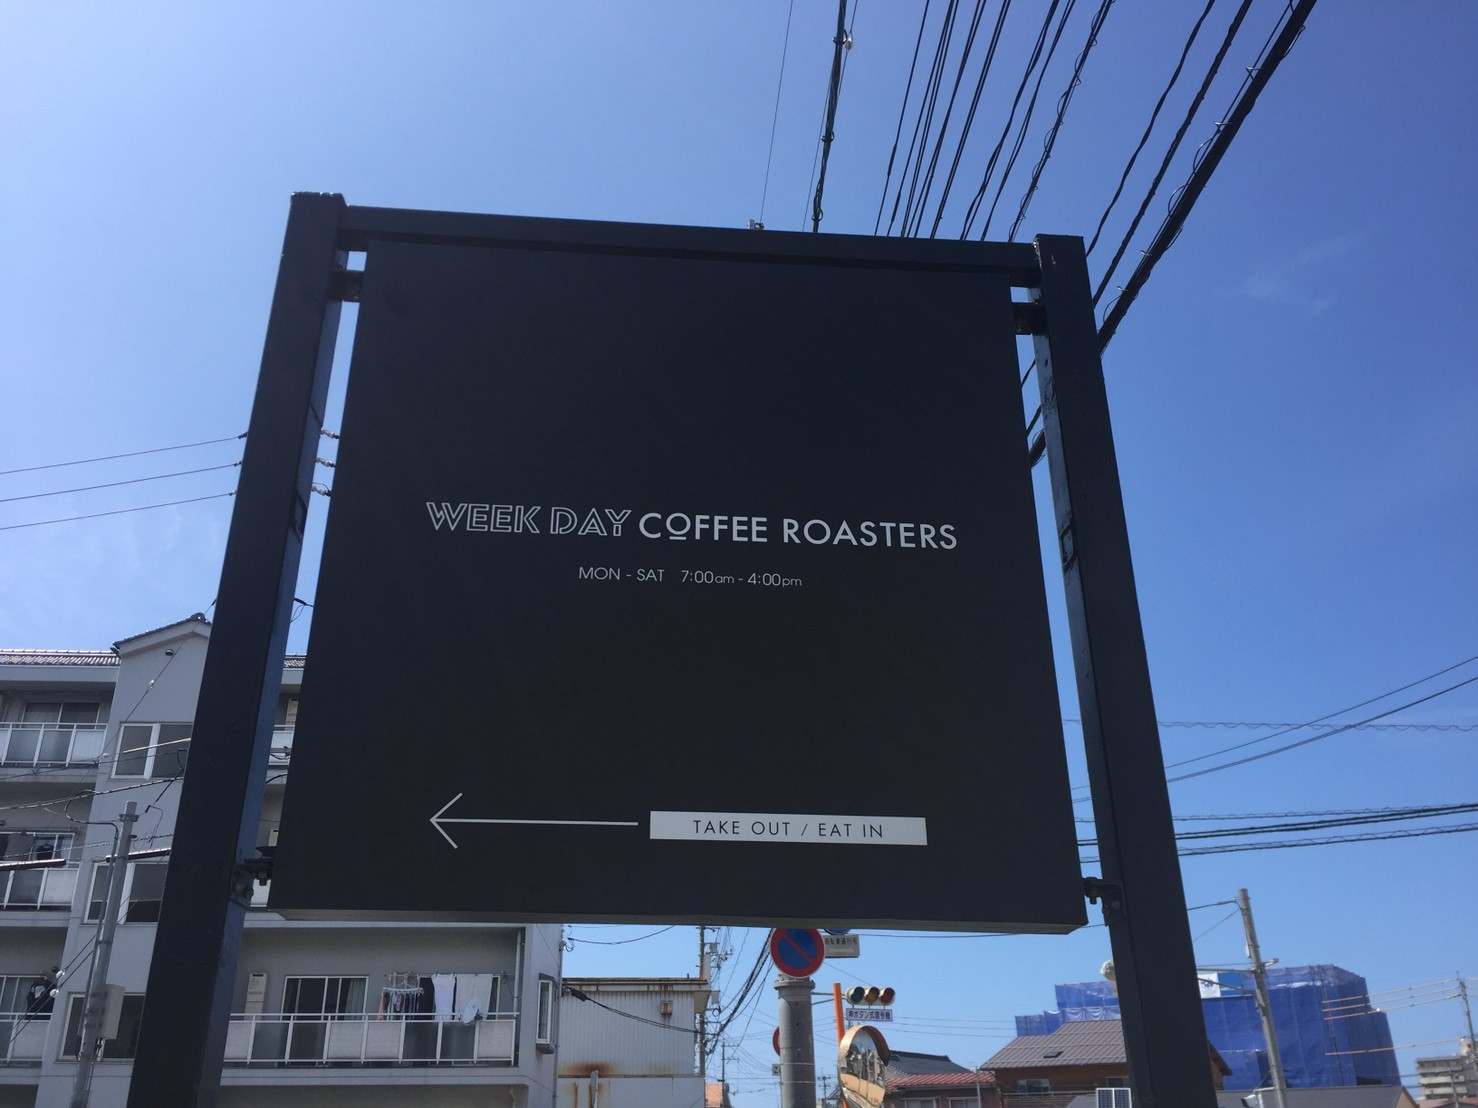 WEEK DAY COFFEE ROASTERS  イケポン_e0115904_09134361.jpg